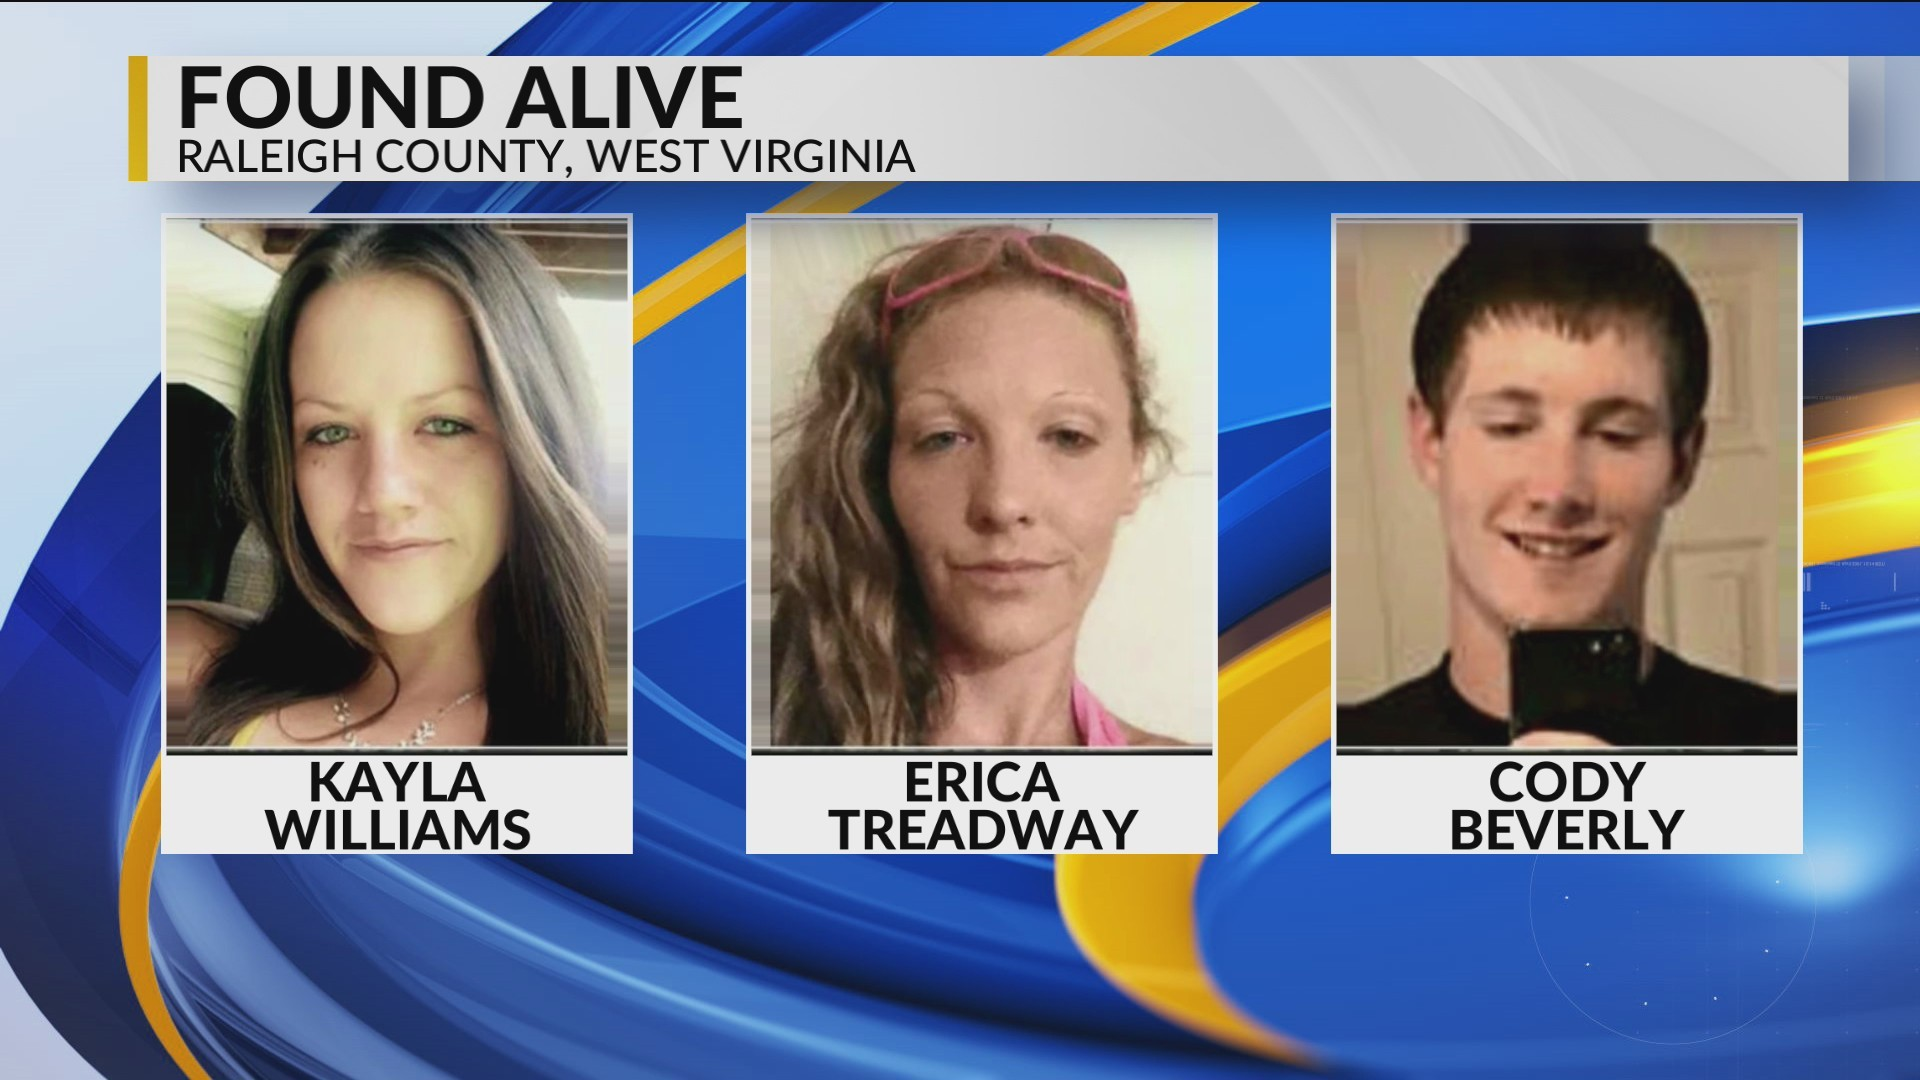 3 Missing People Found ALIVE